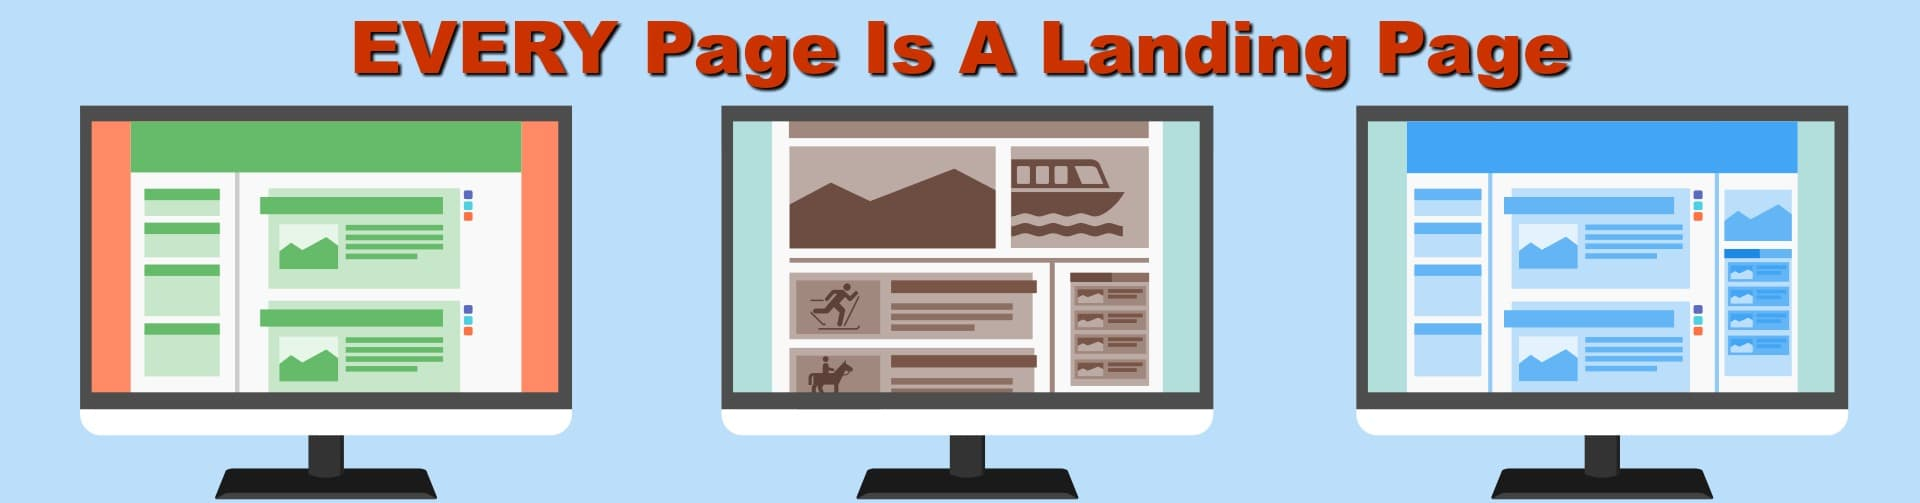 Each page is a landing page